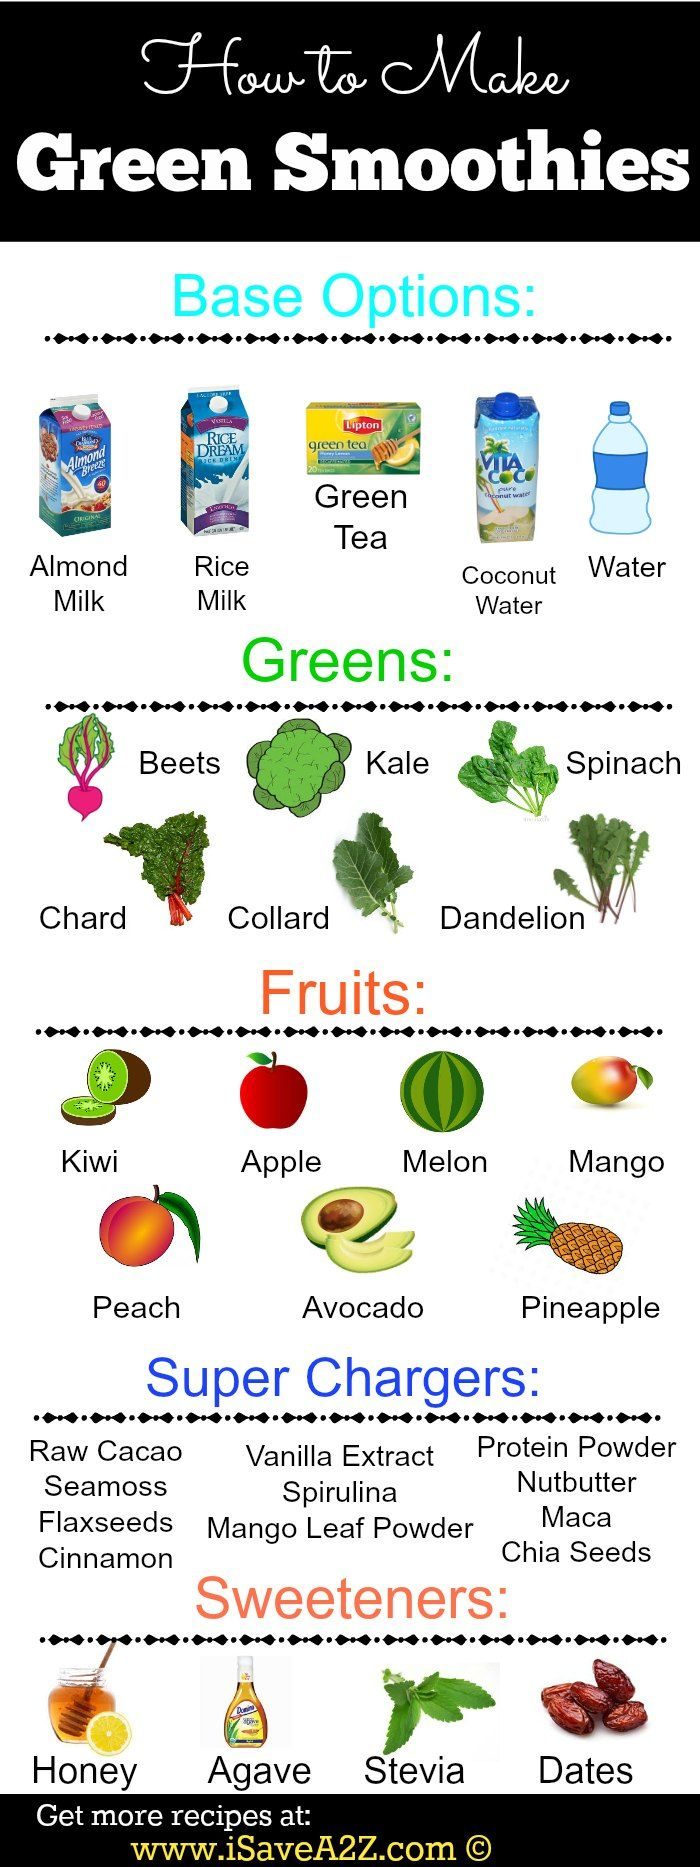 Would you like to know how to get started with green smoothies and try your first delicious green smoothie recipe? Get my FREE 12 Day Green Smoothie E-Course where I walk you through the process. Lose weight and get more energy. Click the link to get started: http://www.greenthickies.com/subscribe-email/